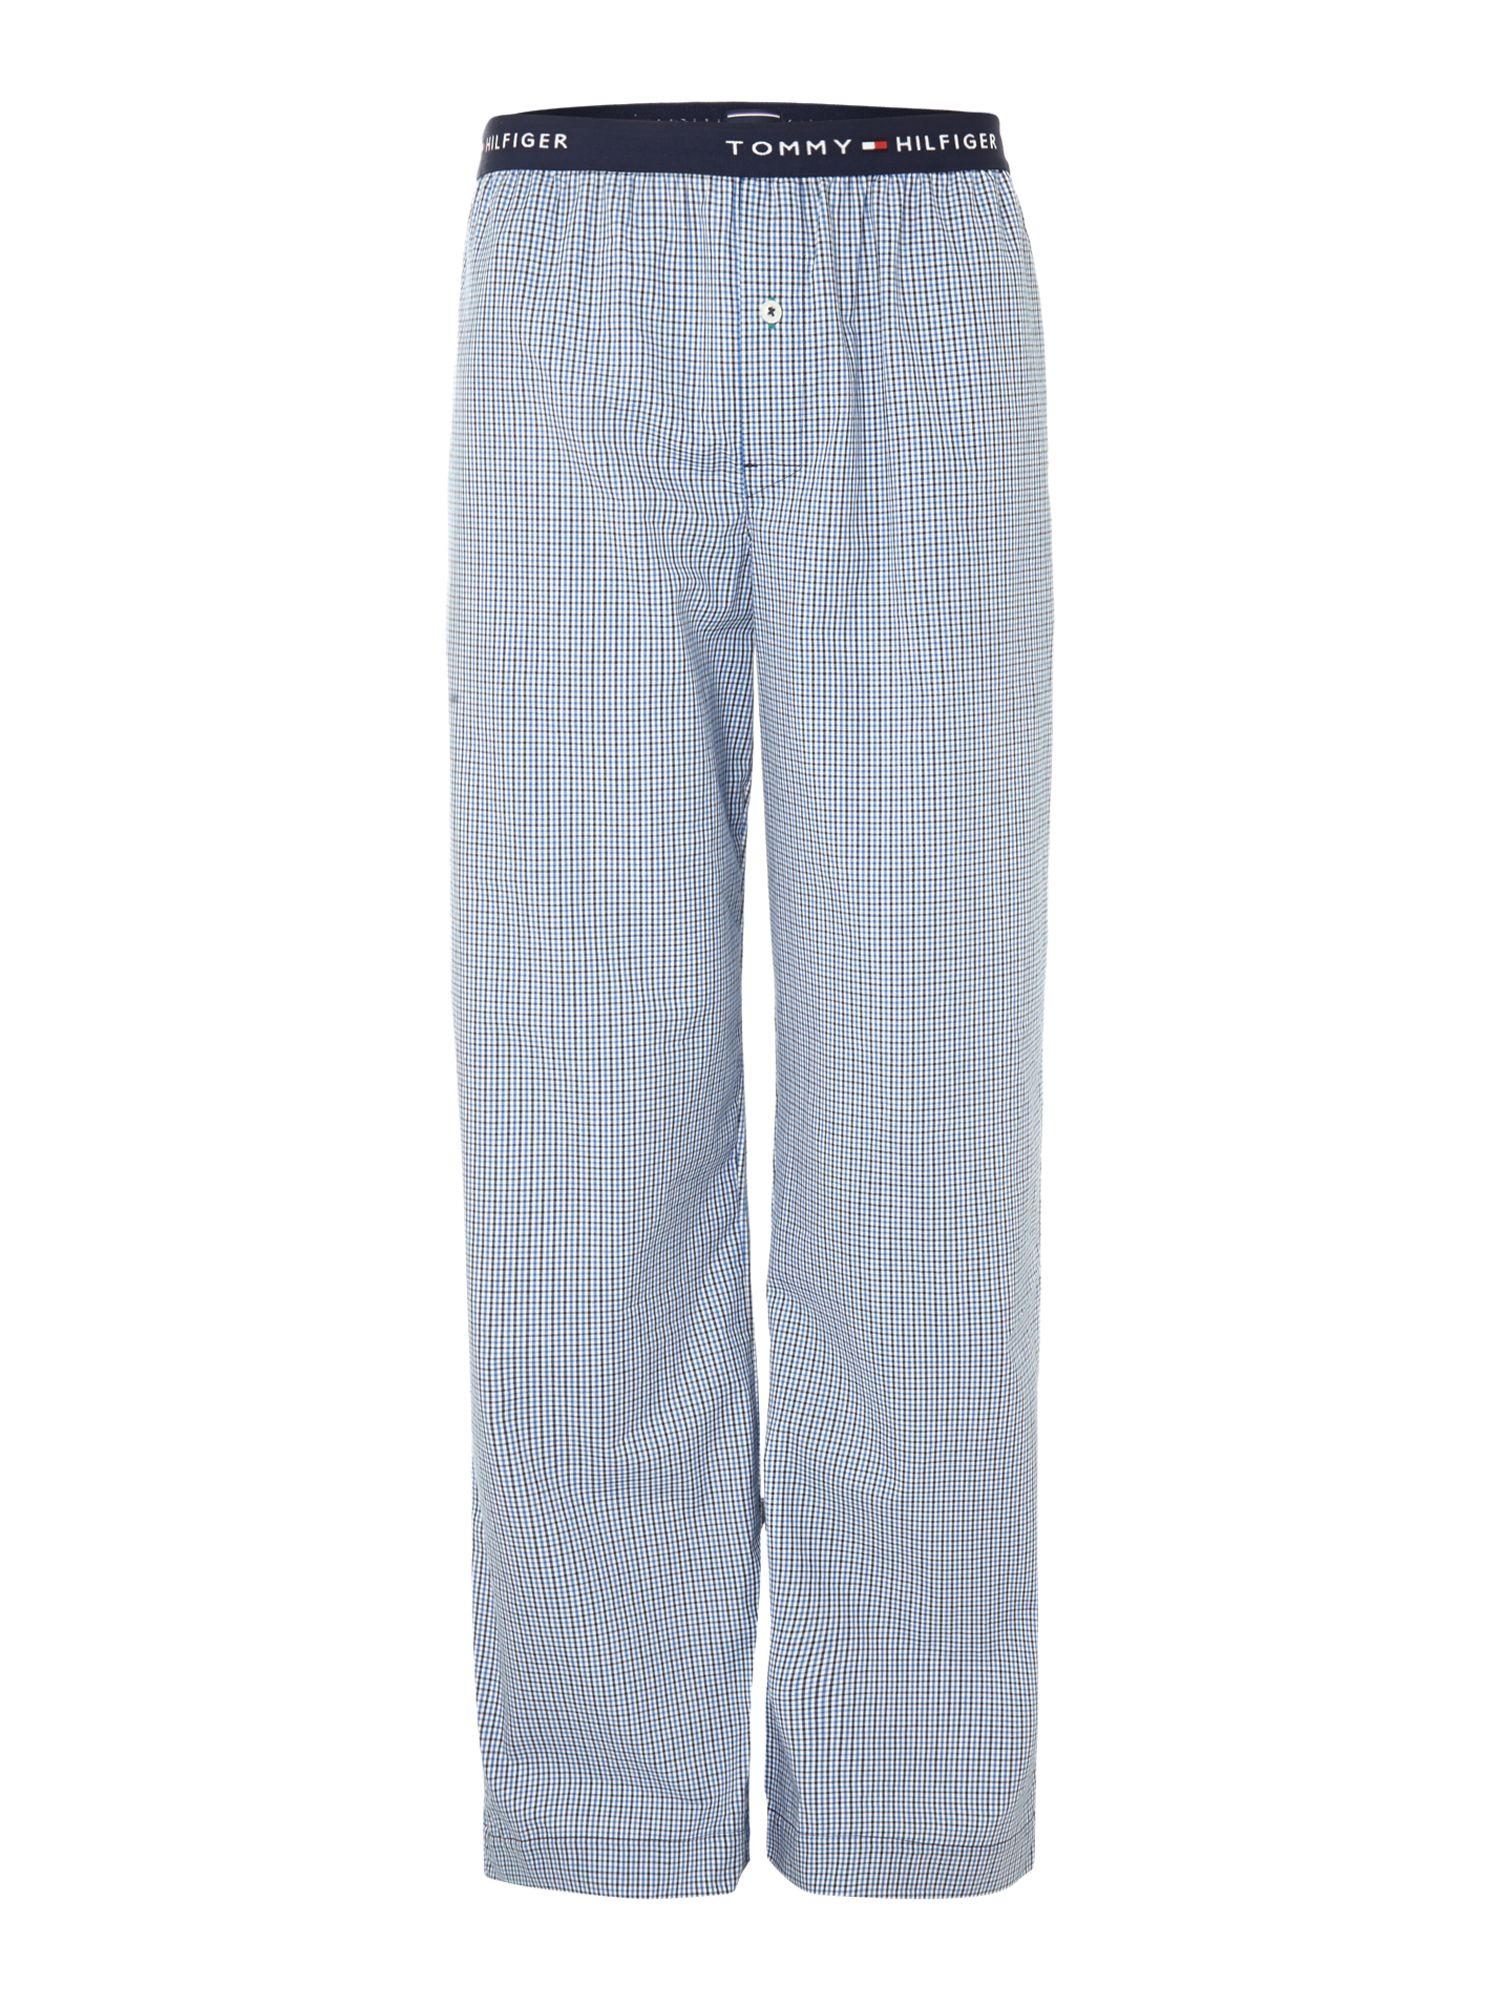 Small check woven nightwear pant